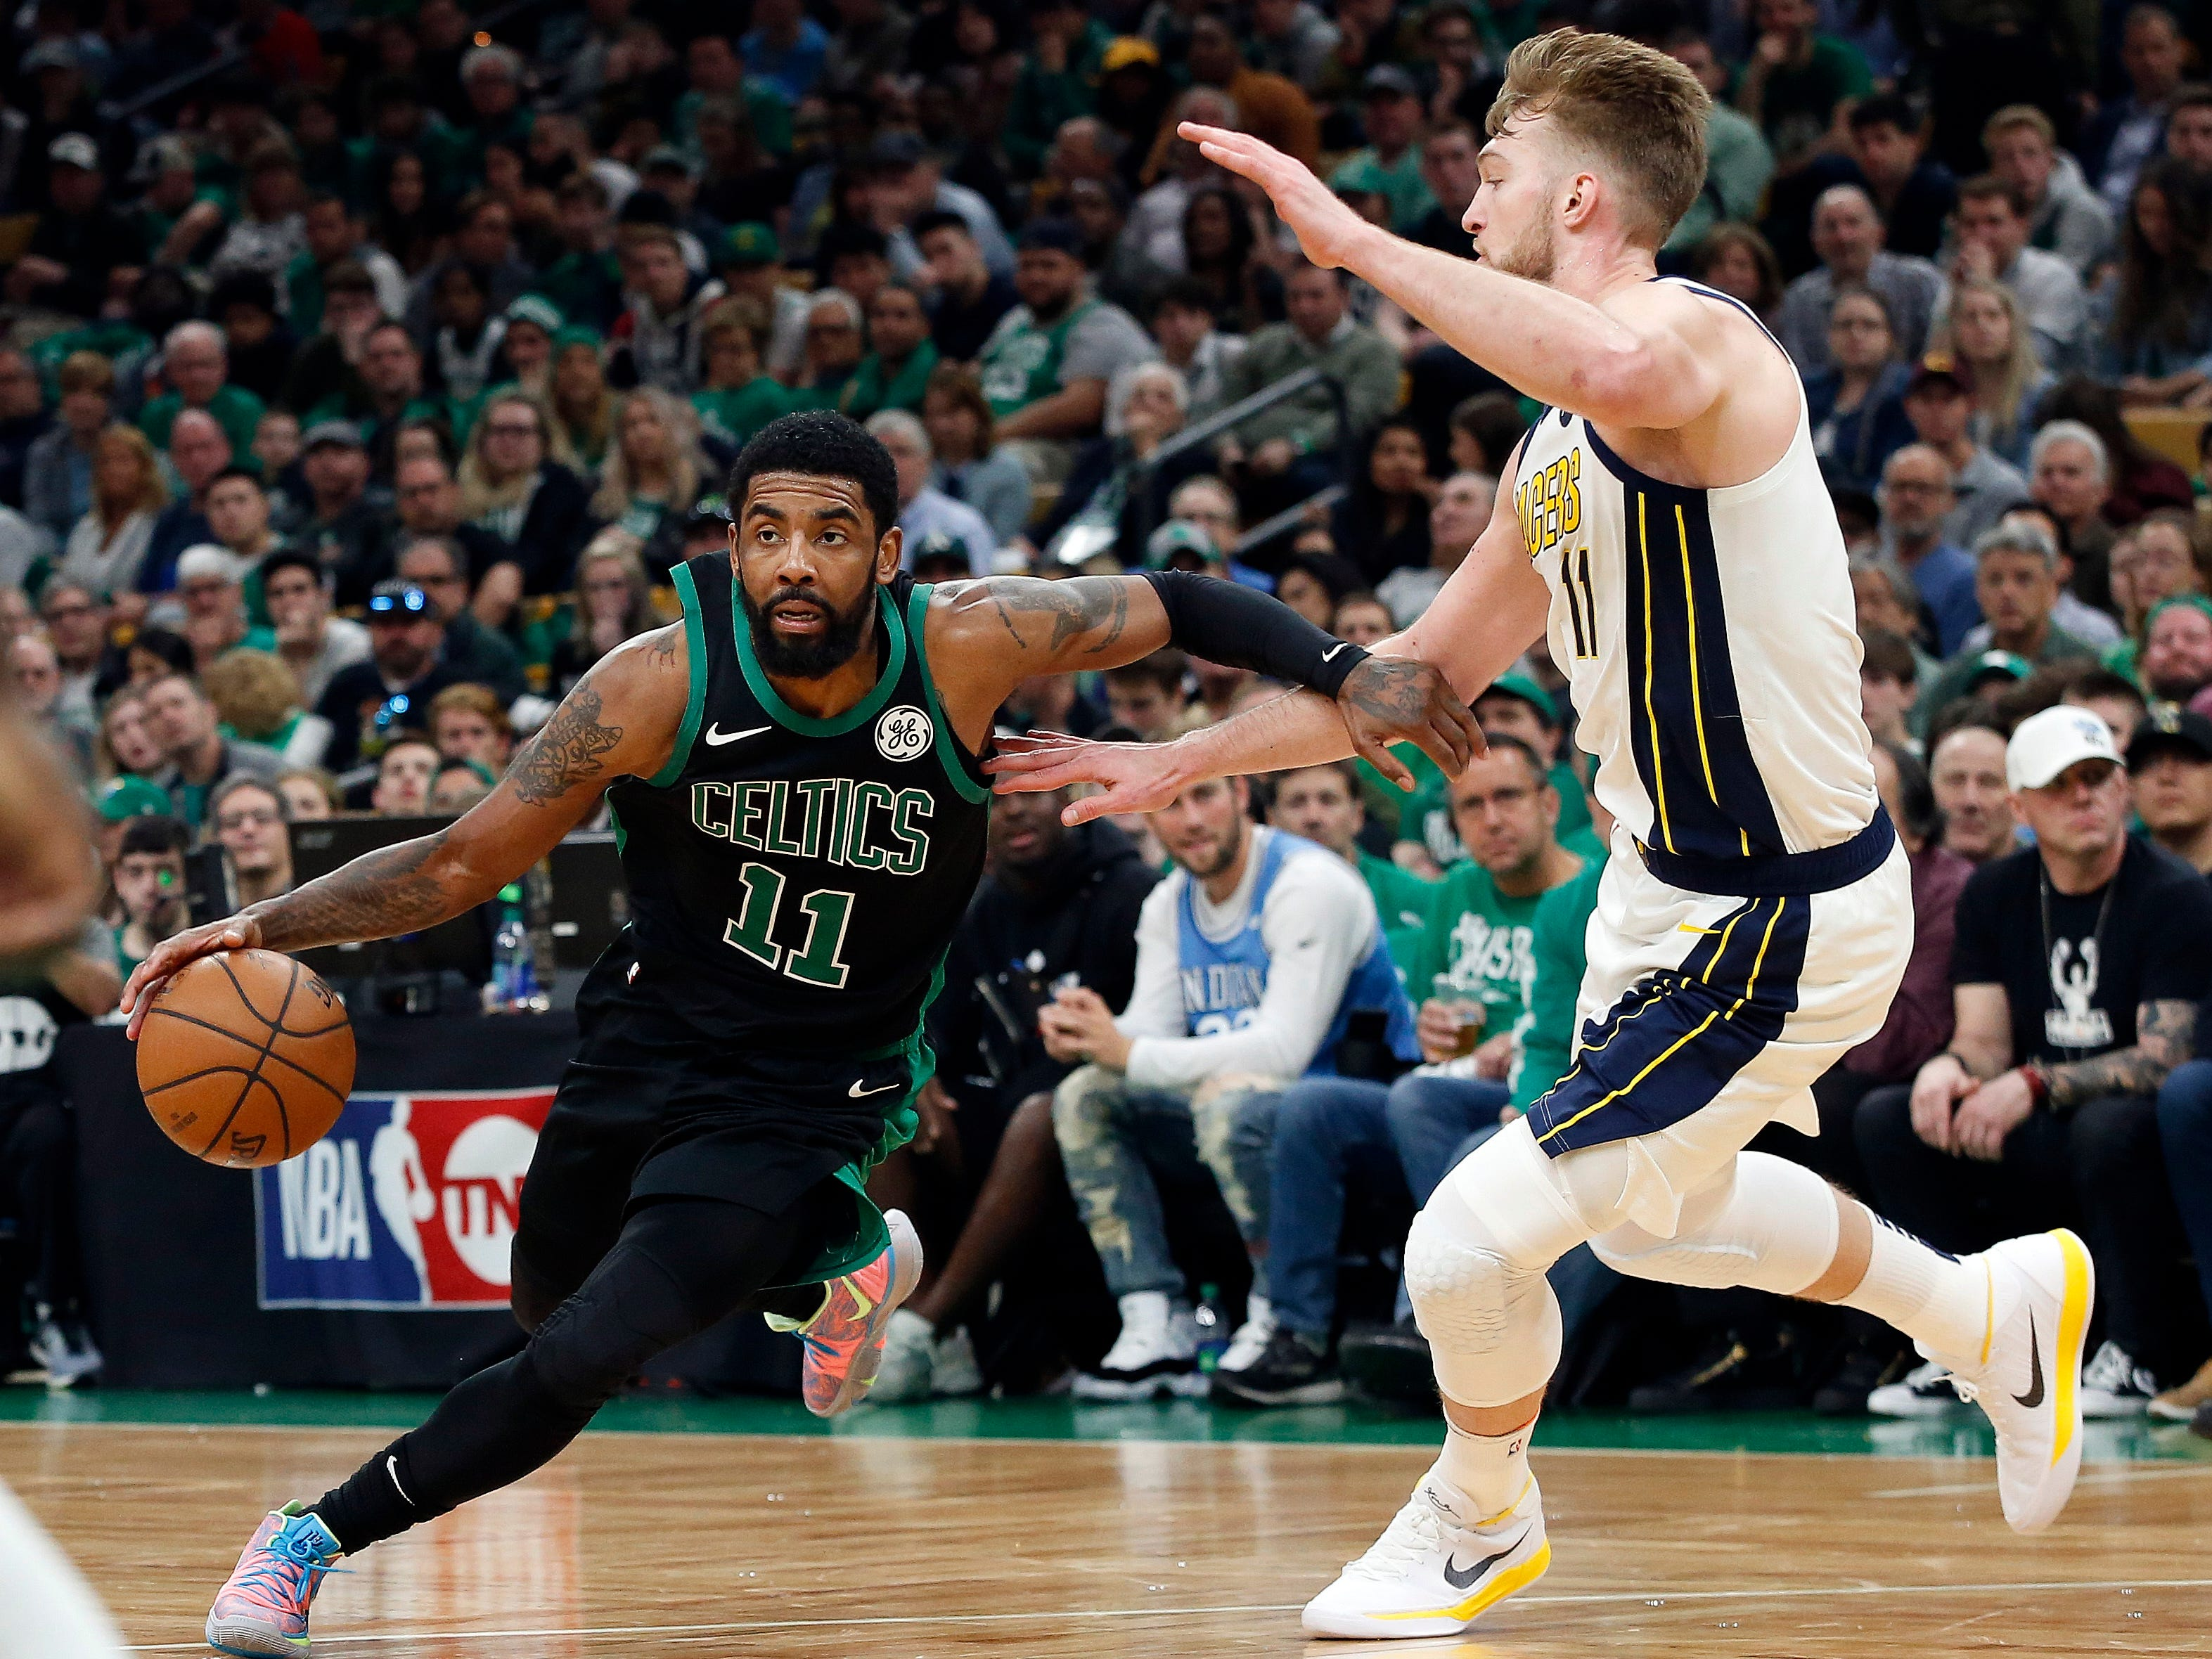 Boston Celtics' Kyrie Irving drives on Indiana Pacers' Domantas Sabonisn during the second quarter in Game 1 of a first-round NBA basketball playoff series, Sunday, April 14, 2019, in Boston.